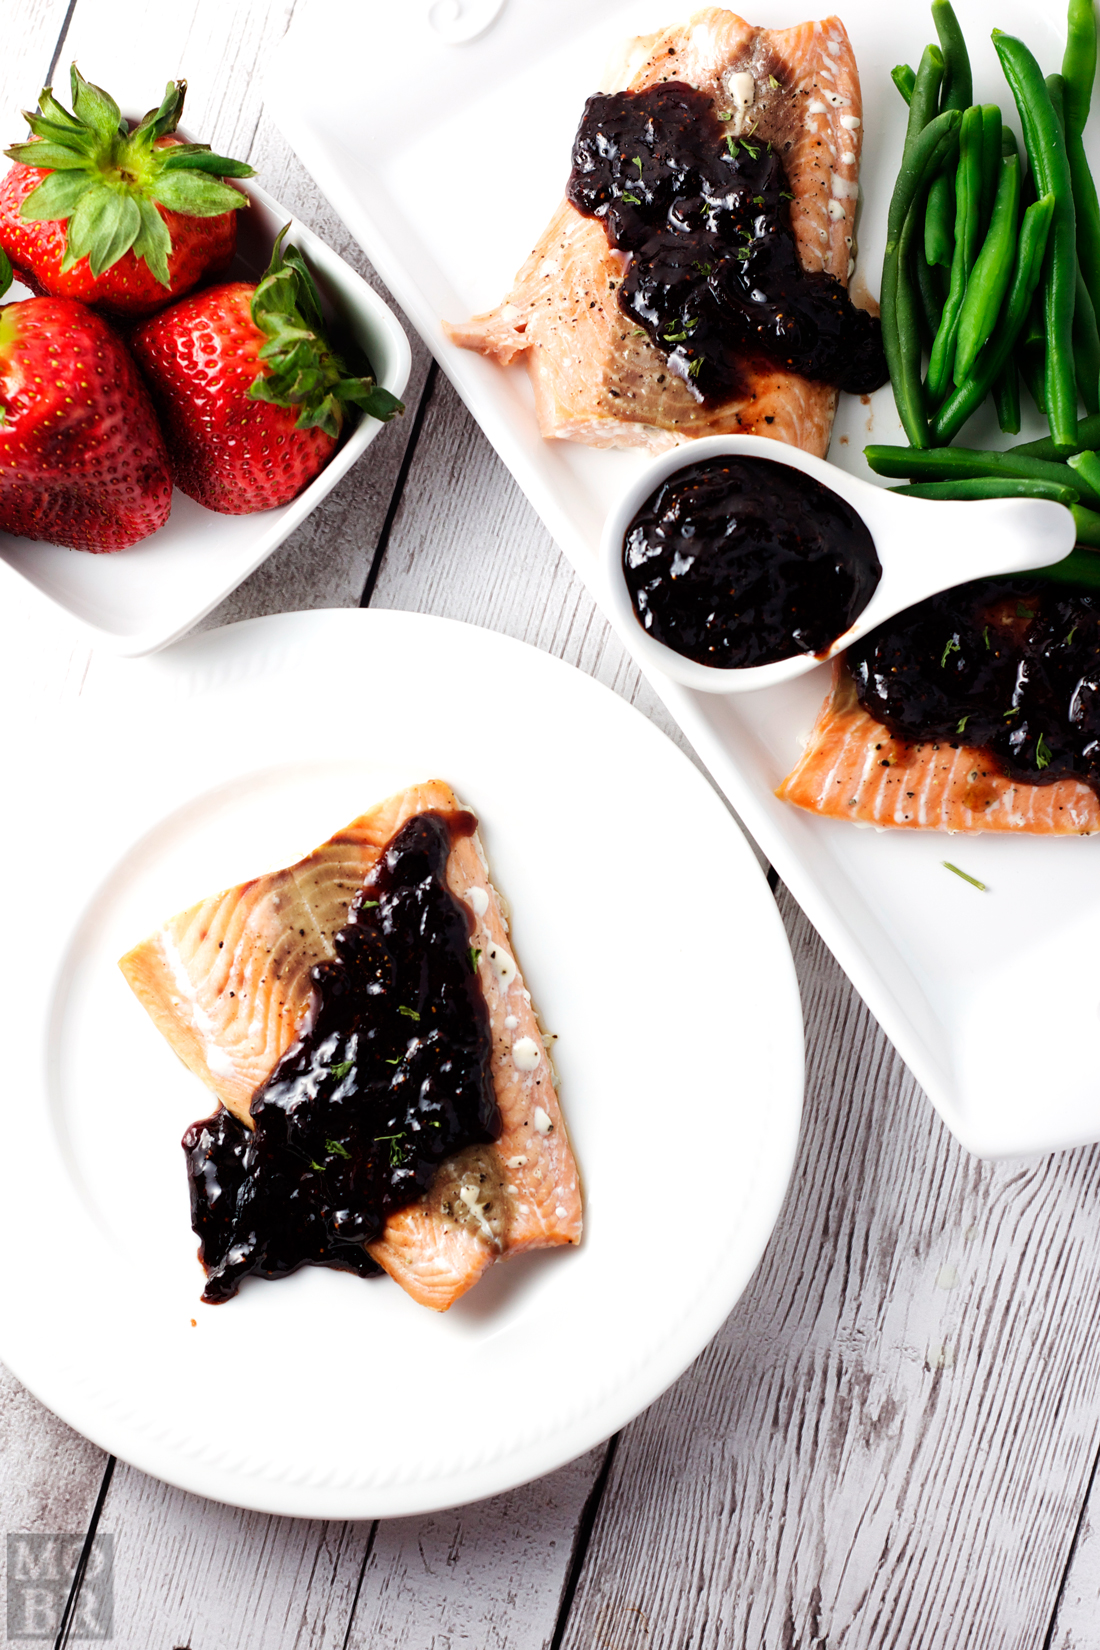 Roasted Salmon with Strawberry Balsamic Reduction in 30 minutes or less. Anything with balsamic reduction is a winner in my book.